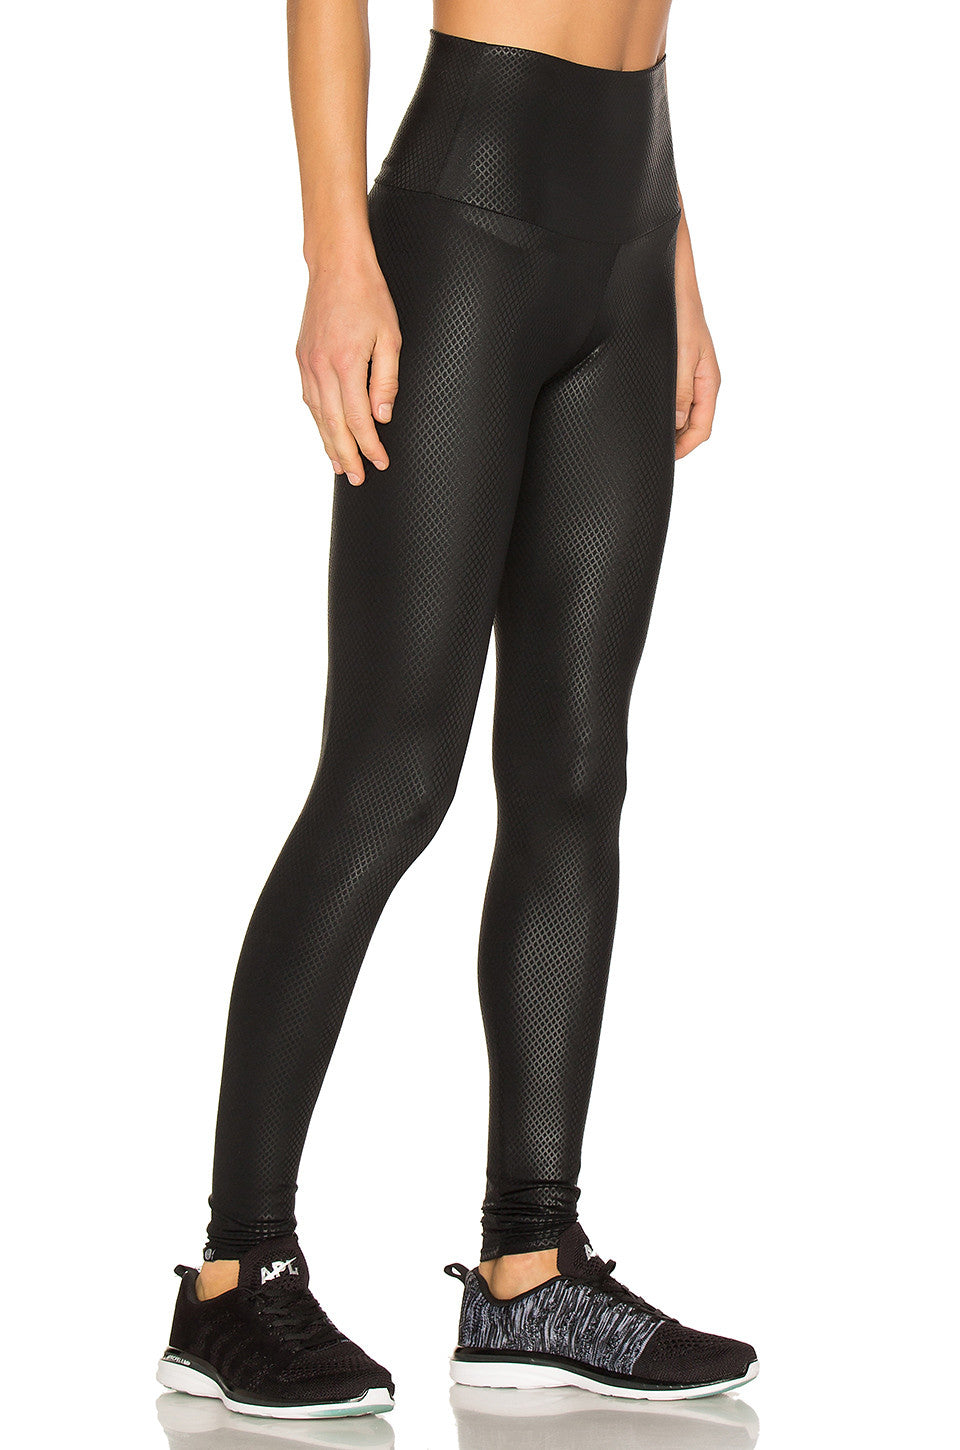 642f5e551a43af Onzie High Rise Legging Black Fishnet – Bliss Bandits